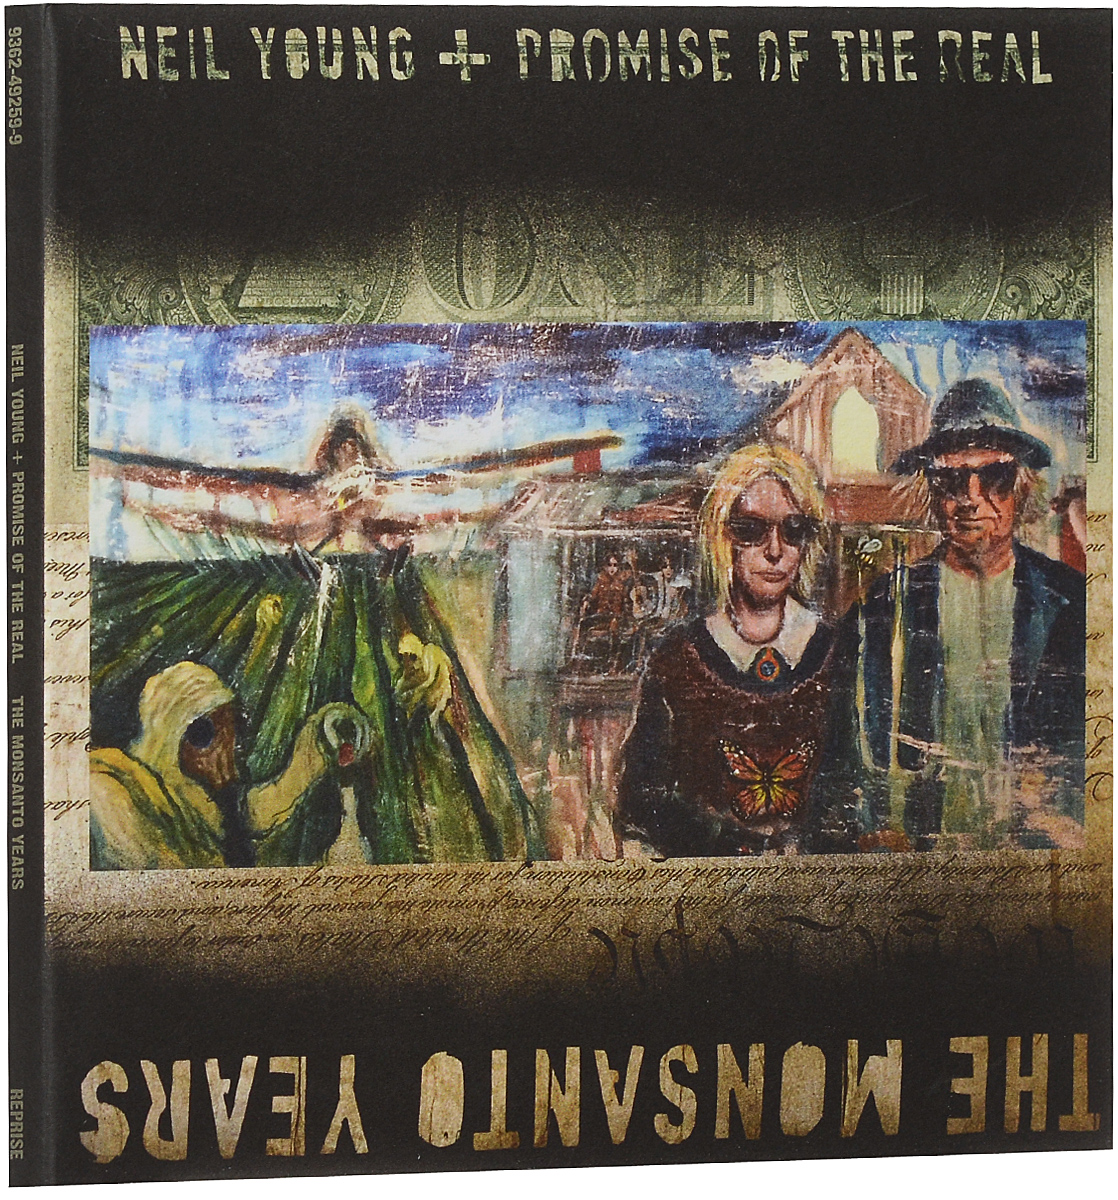 Нил Янг,Promise Of The Real Neil Young + Promise Of The Real. The Monsanto Years (CD + DVD) виниловая пластинка young neil promise of the real the monsanto years limited